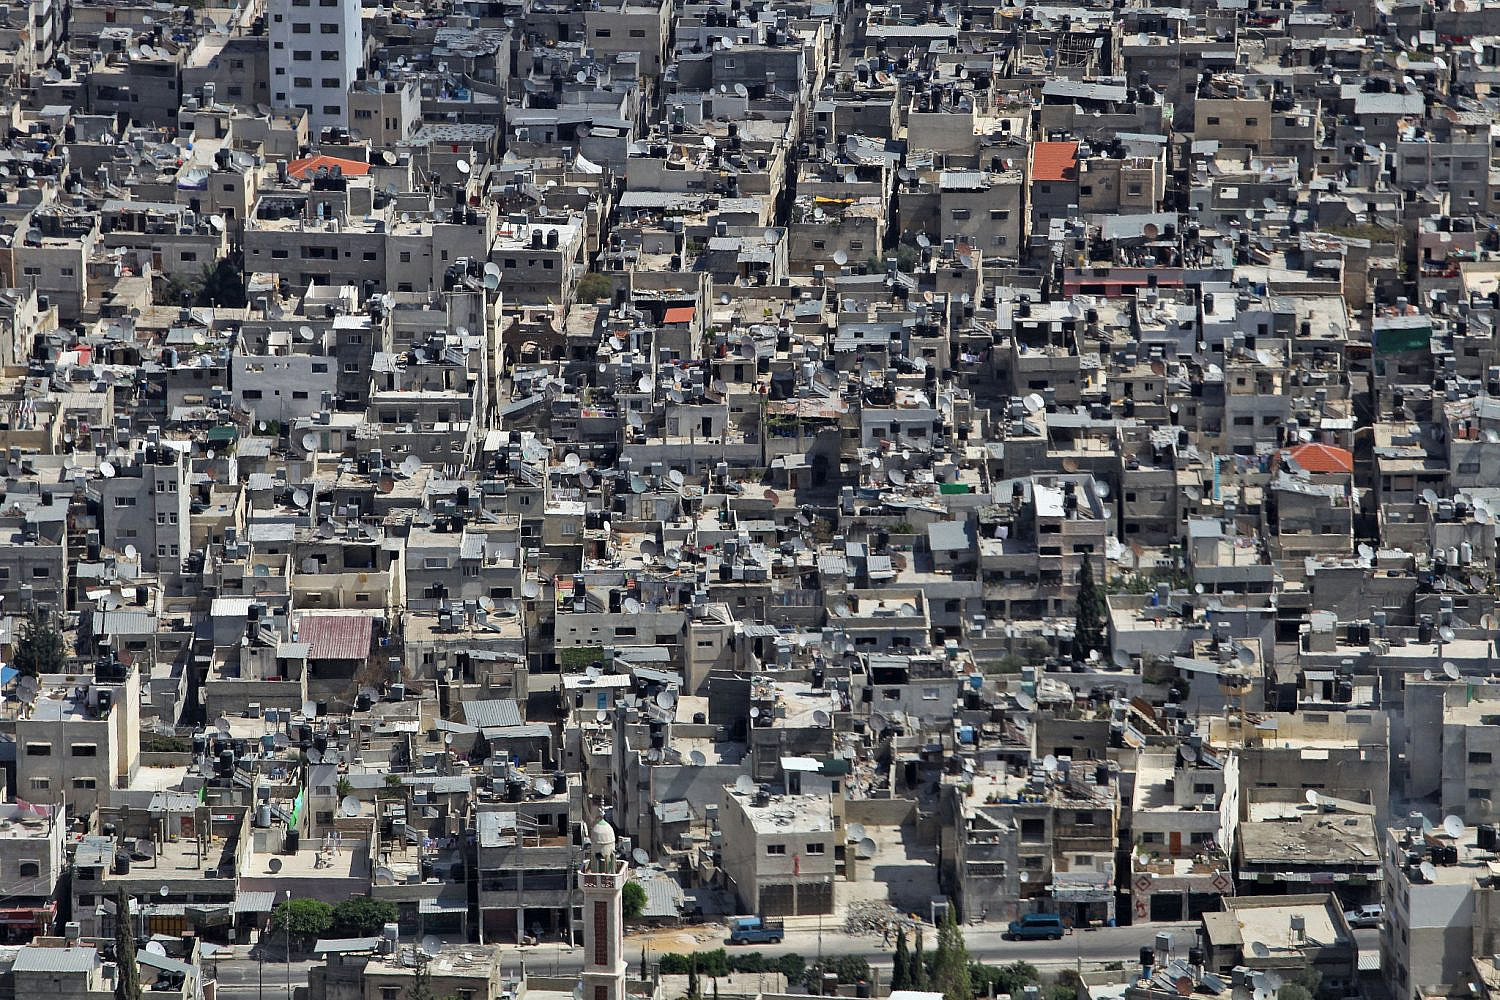 A view of the crowded Balata refugee camp in Nablus. Balata is the largest refugee camp in the West Bank, housing nearly 30,000 people. Sept. 23, 2009. (Nati Shohat/Flash90)